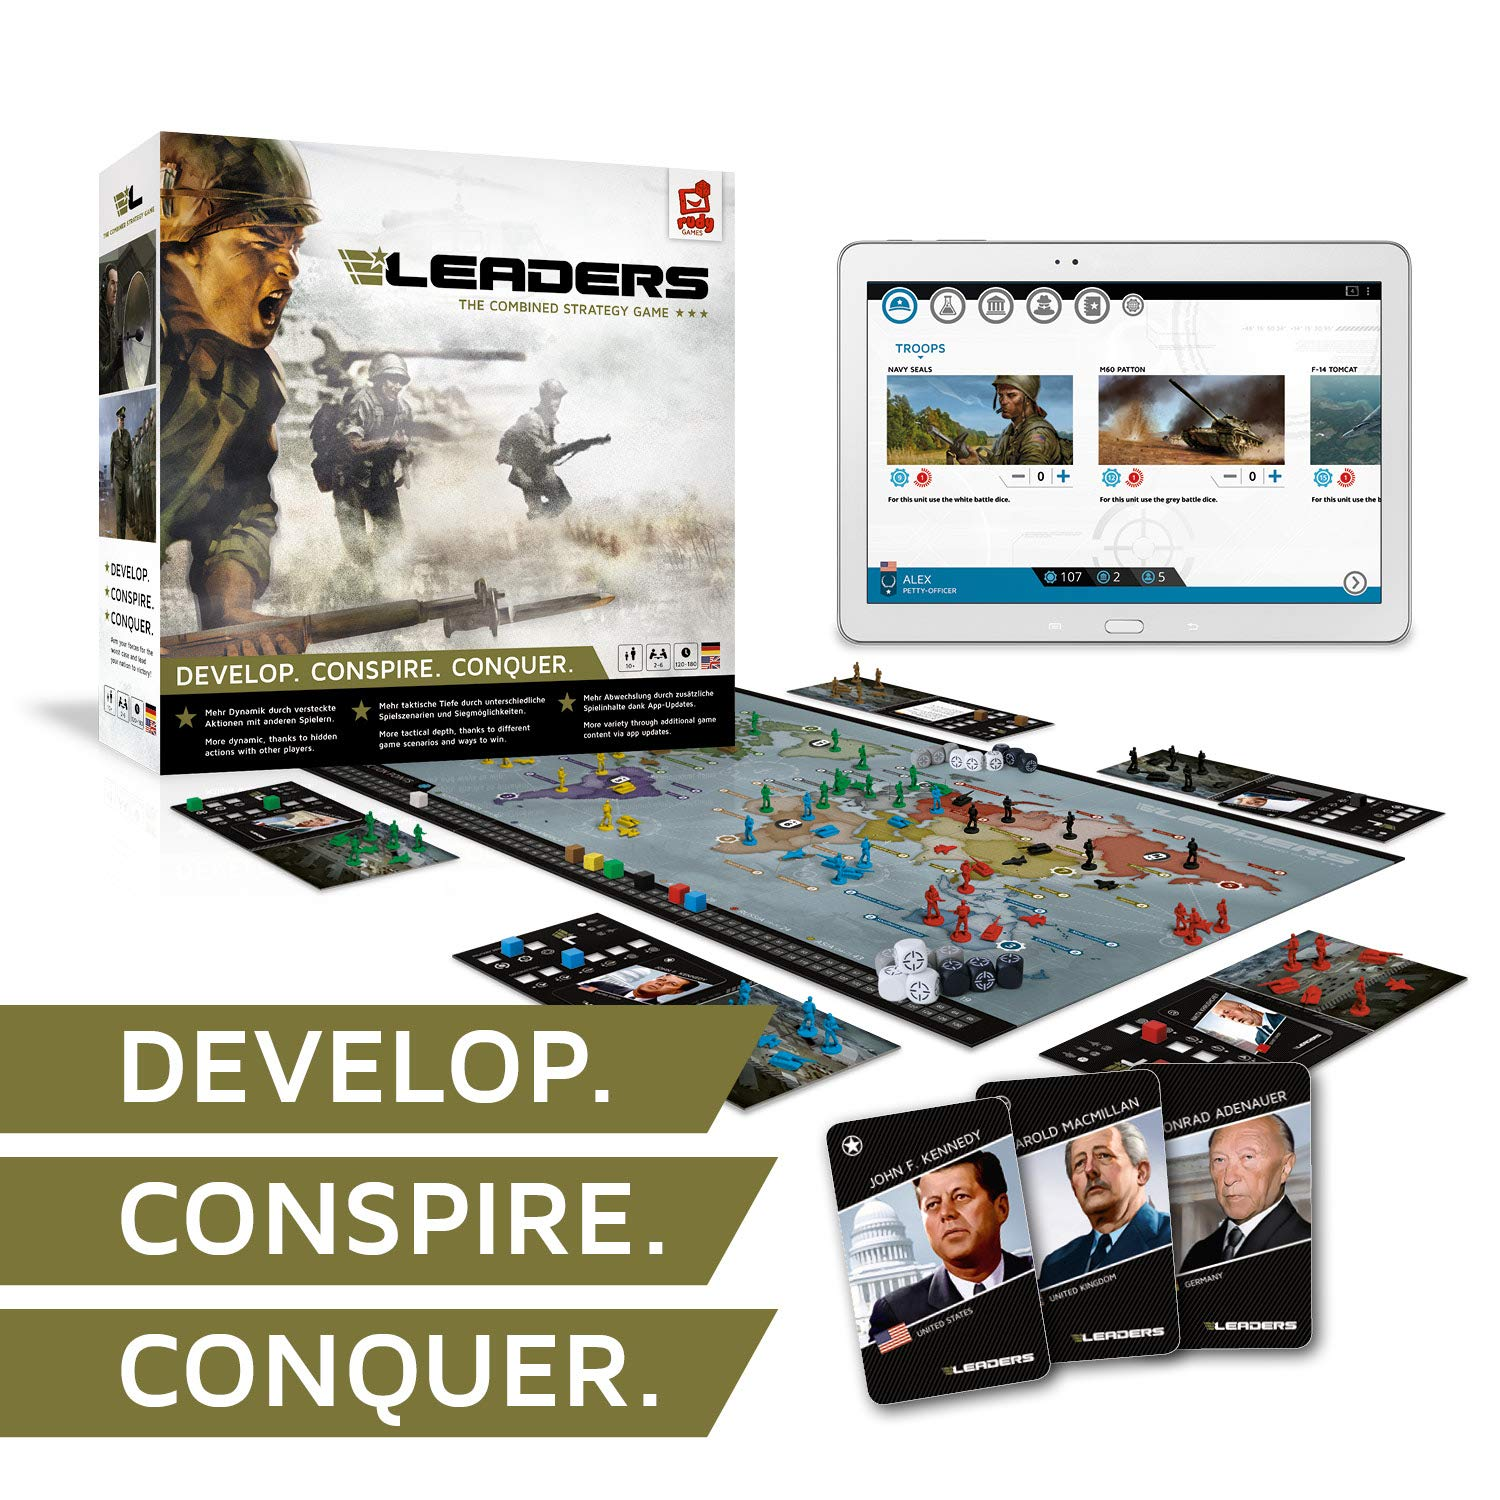 Rudy Games - Leaders 2019 - Interactive Cold War Strategy Board Game with App - for Children 10 Years and Up and Adults by Rudy Games (Image #2)